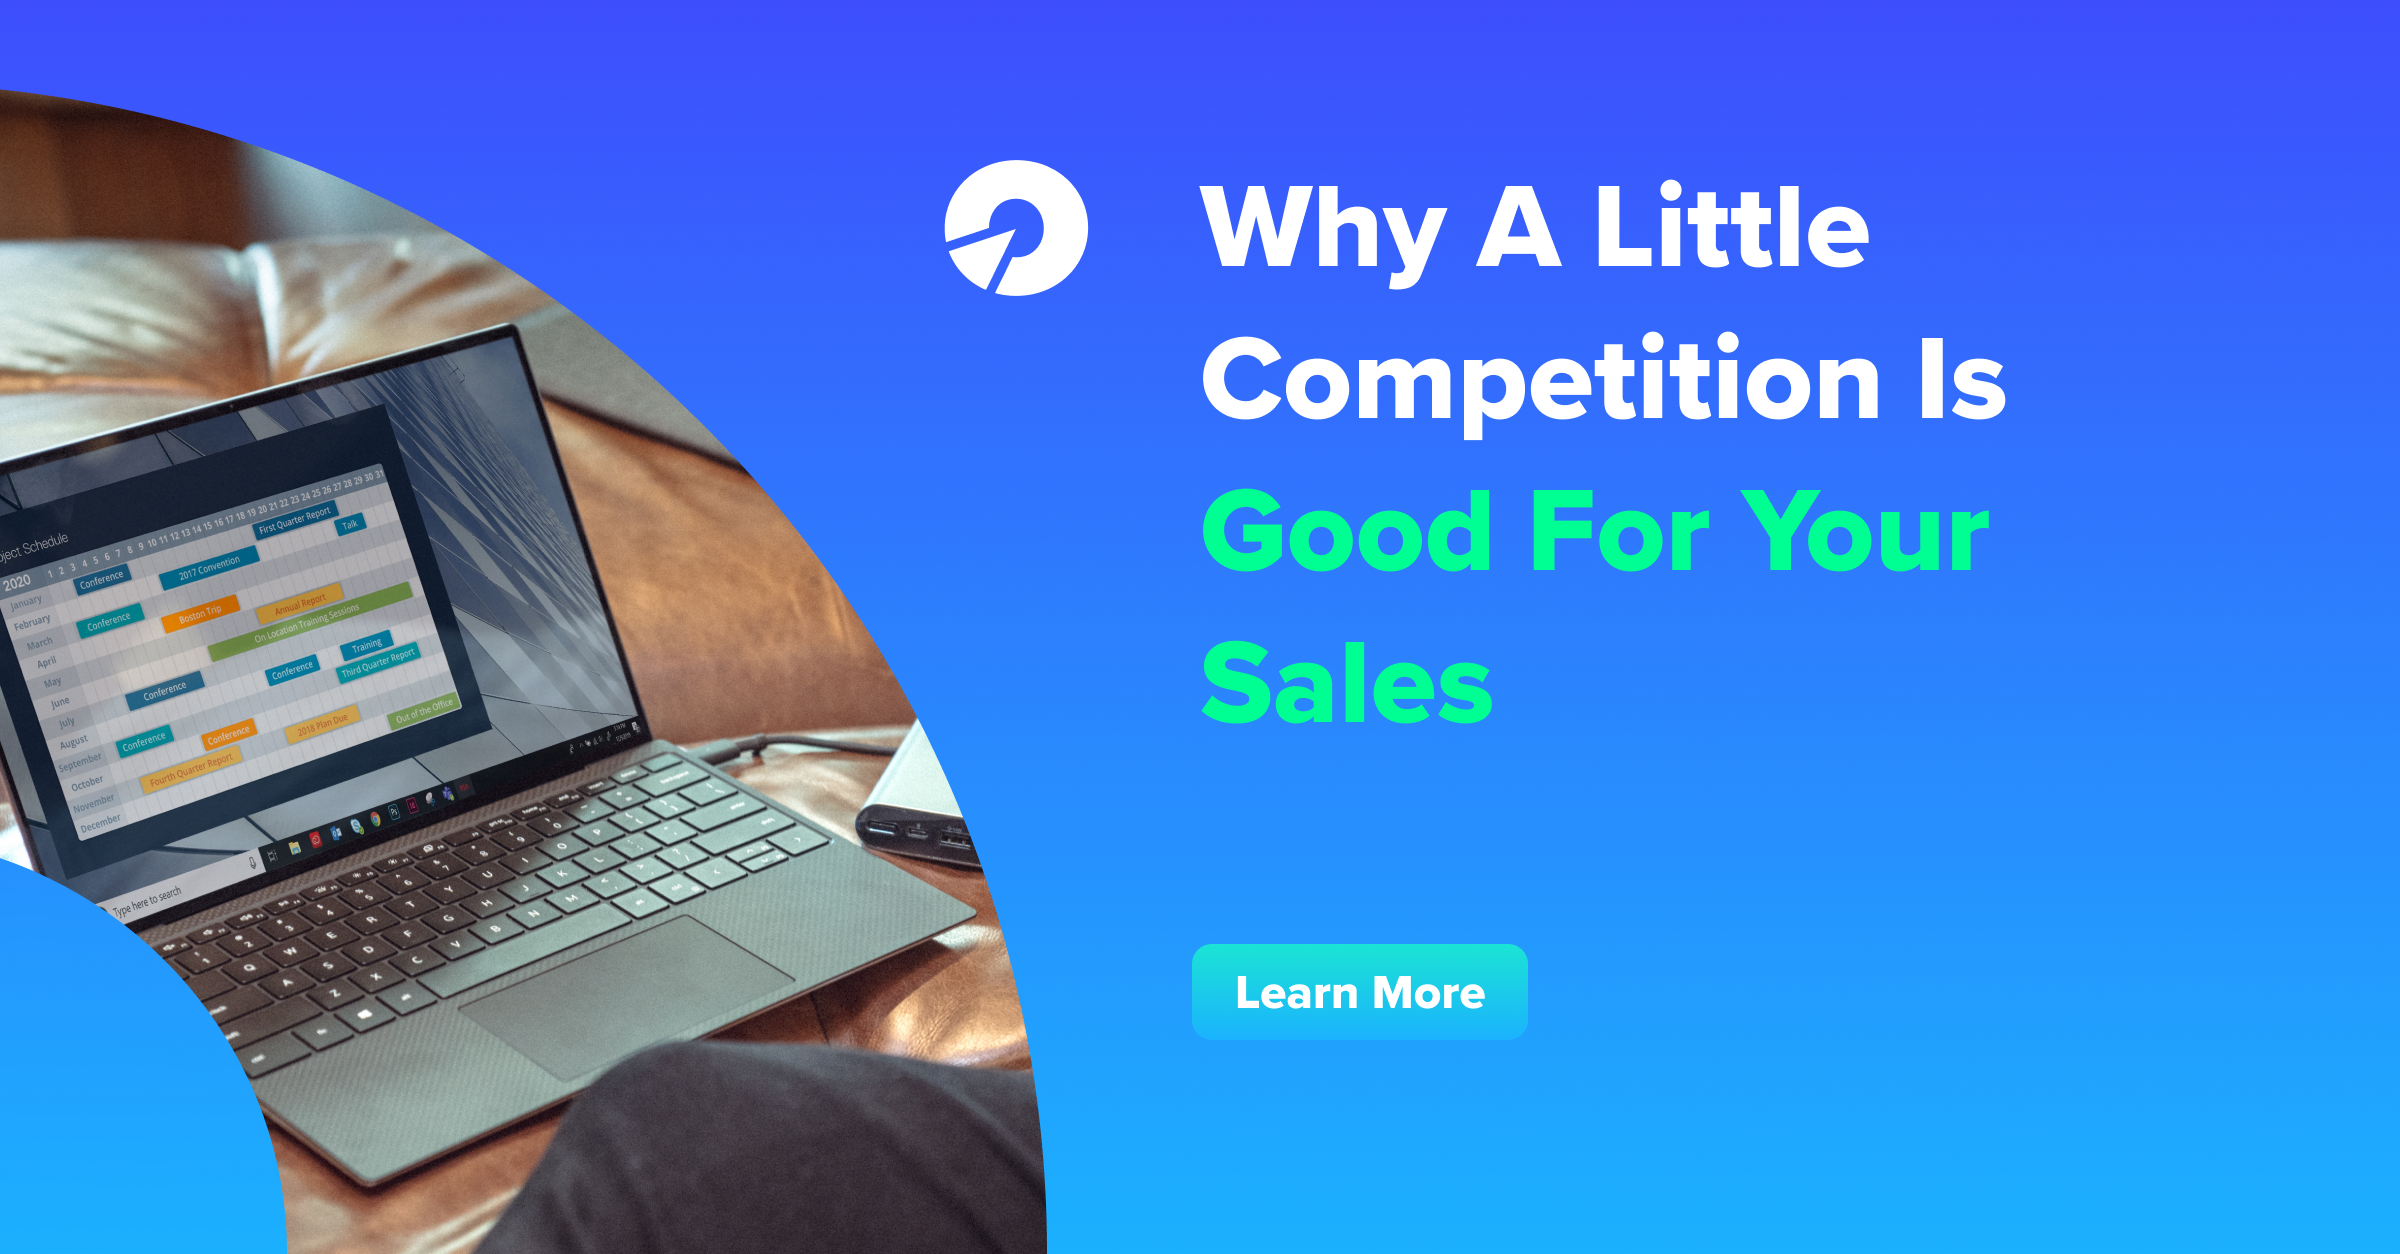 Why A Little Competition Is Good For Your Sales